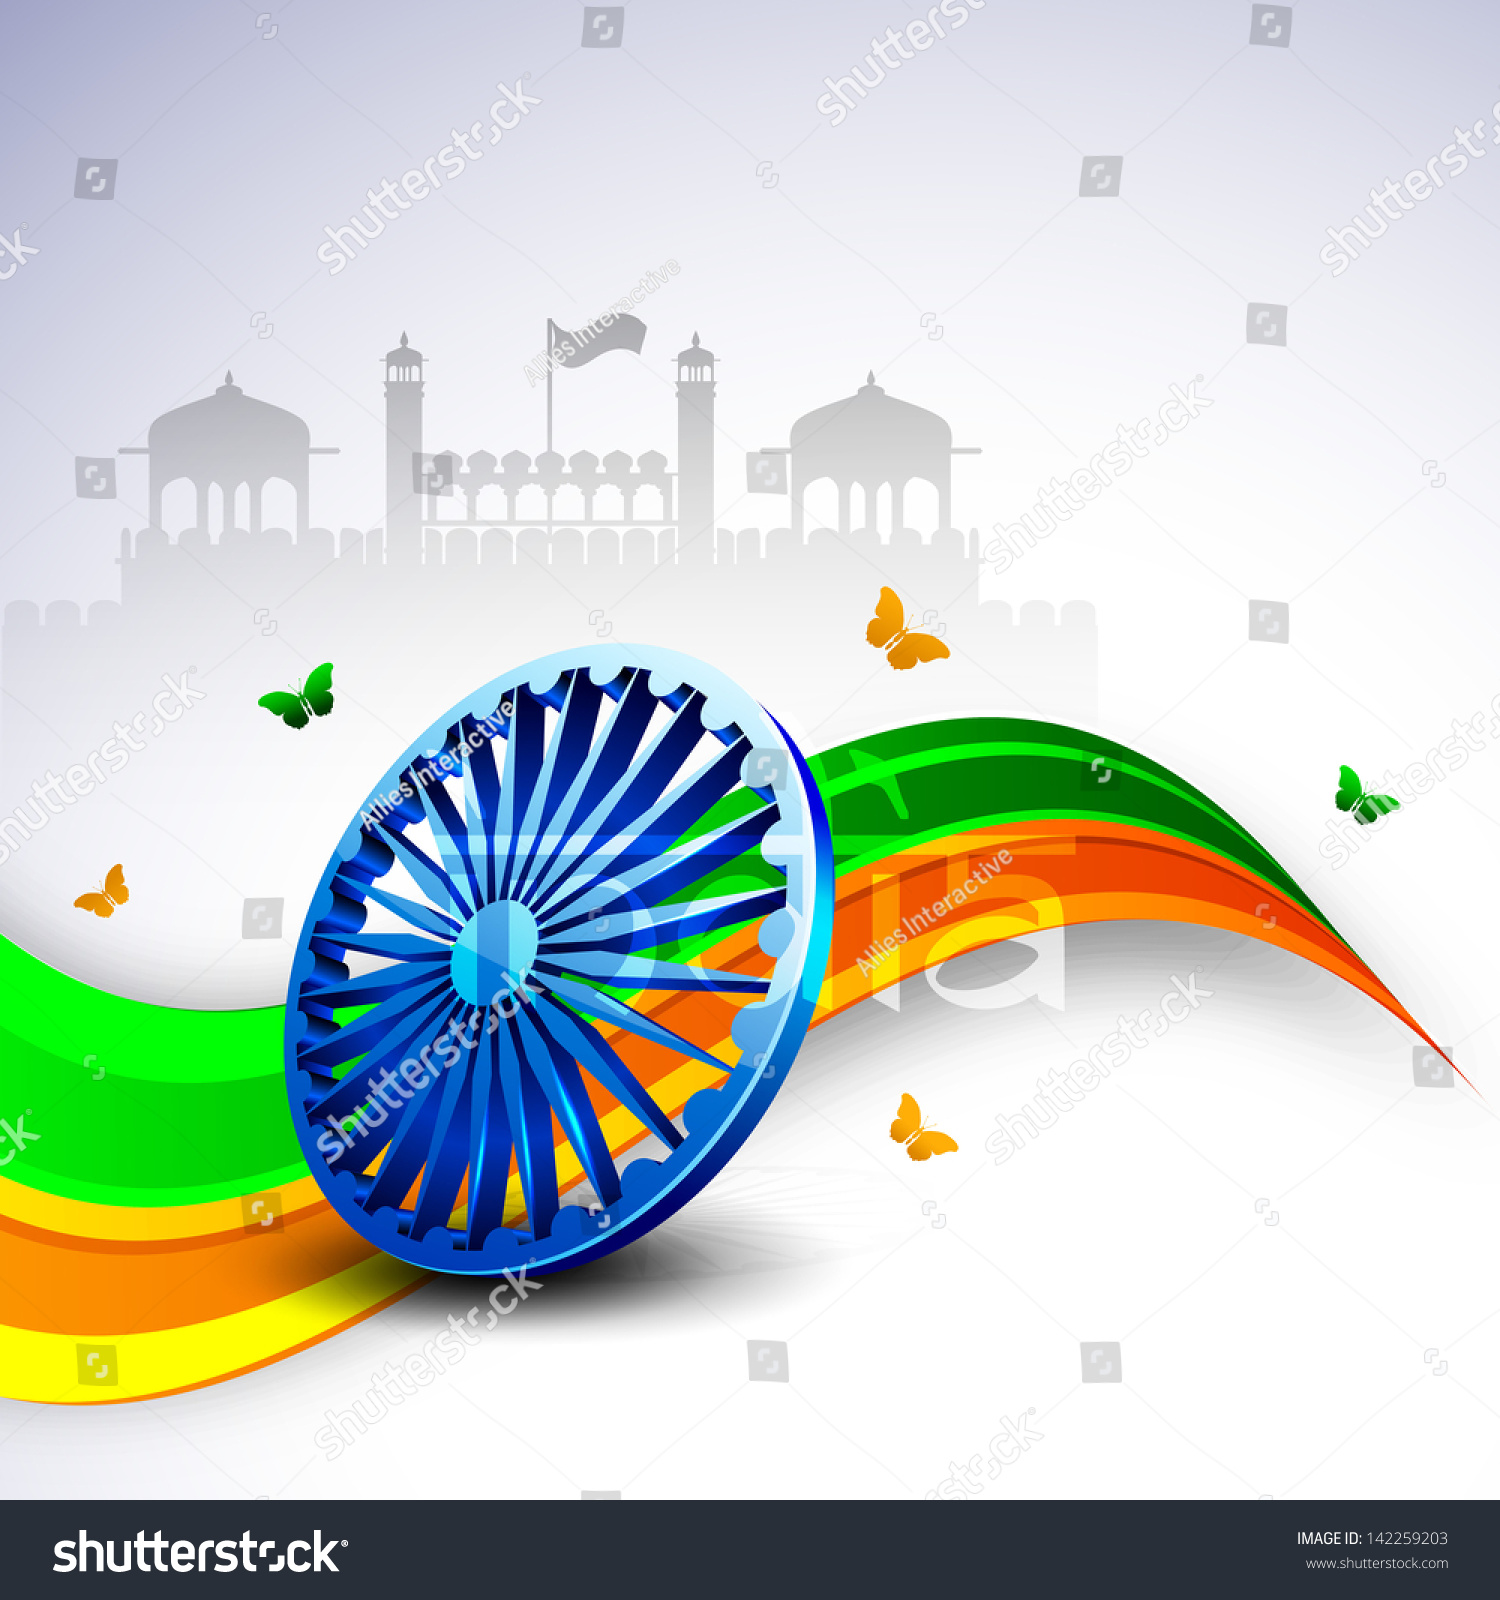 Colors website ashoka - 3d Ashoka Wheel On National Flag Colors Wave Background With Butterflies On Red Fort Background